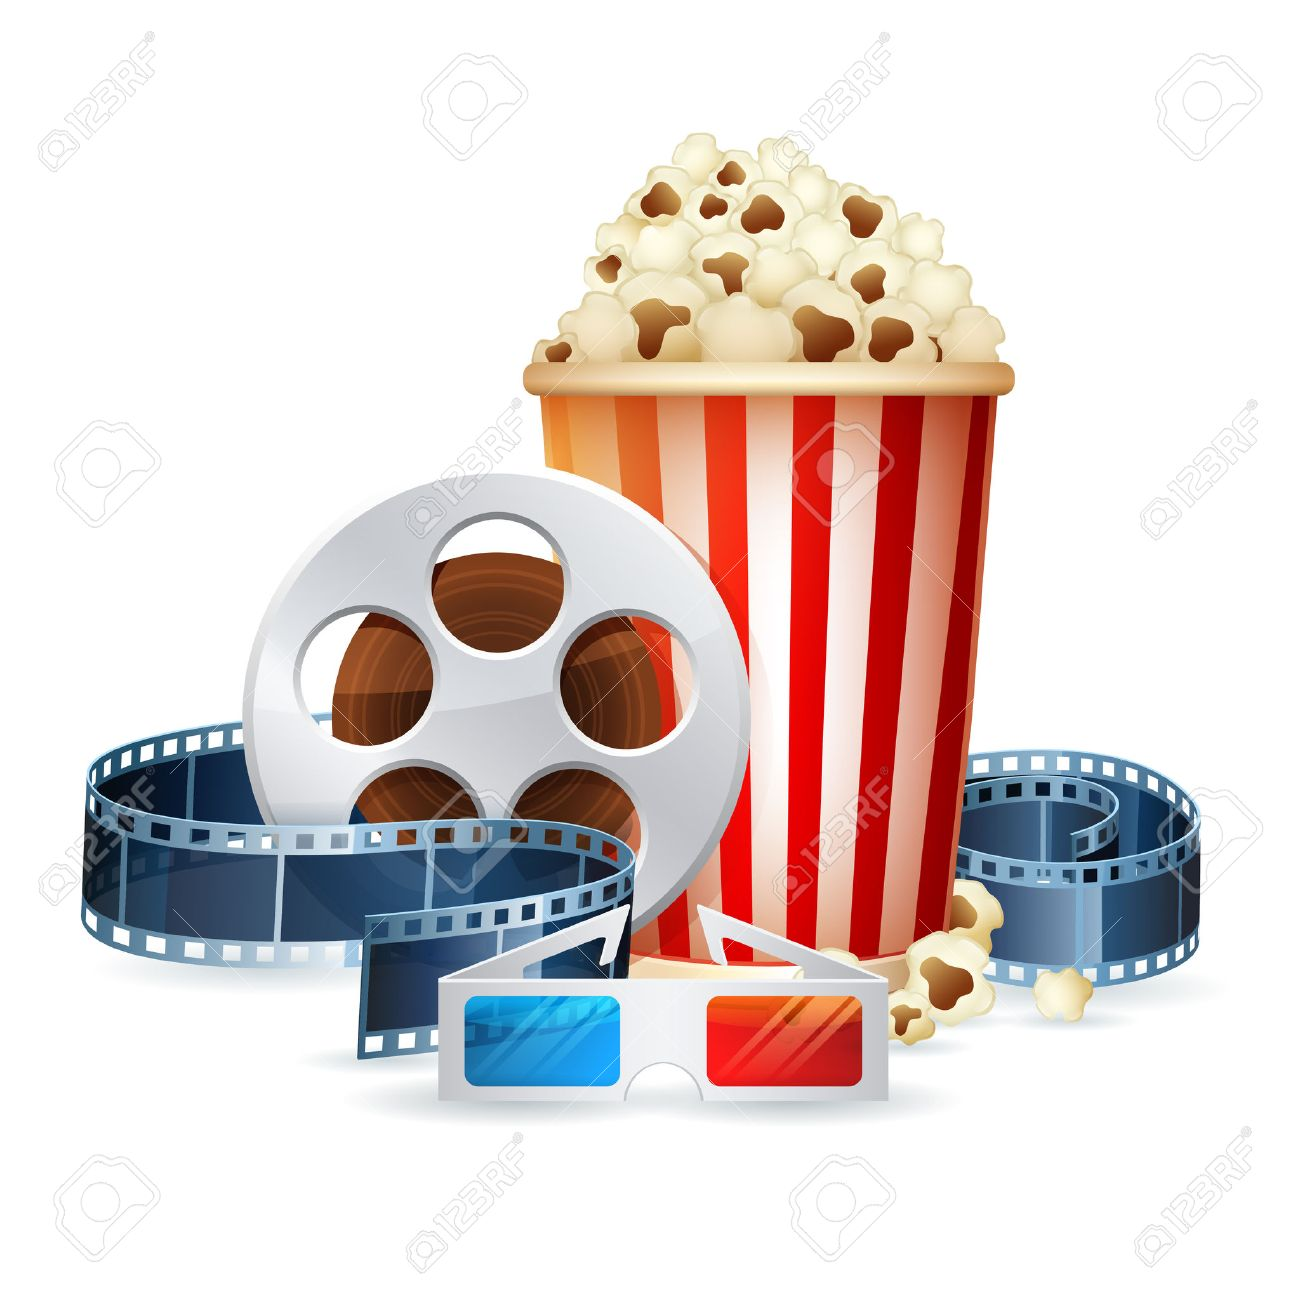 Cinema and movie realistic objects isolated on white, film reel, clapper, popcorn, 3D glasses detailed vector illustration - 39386041